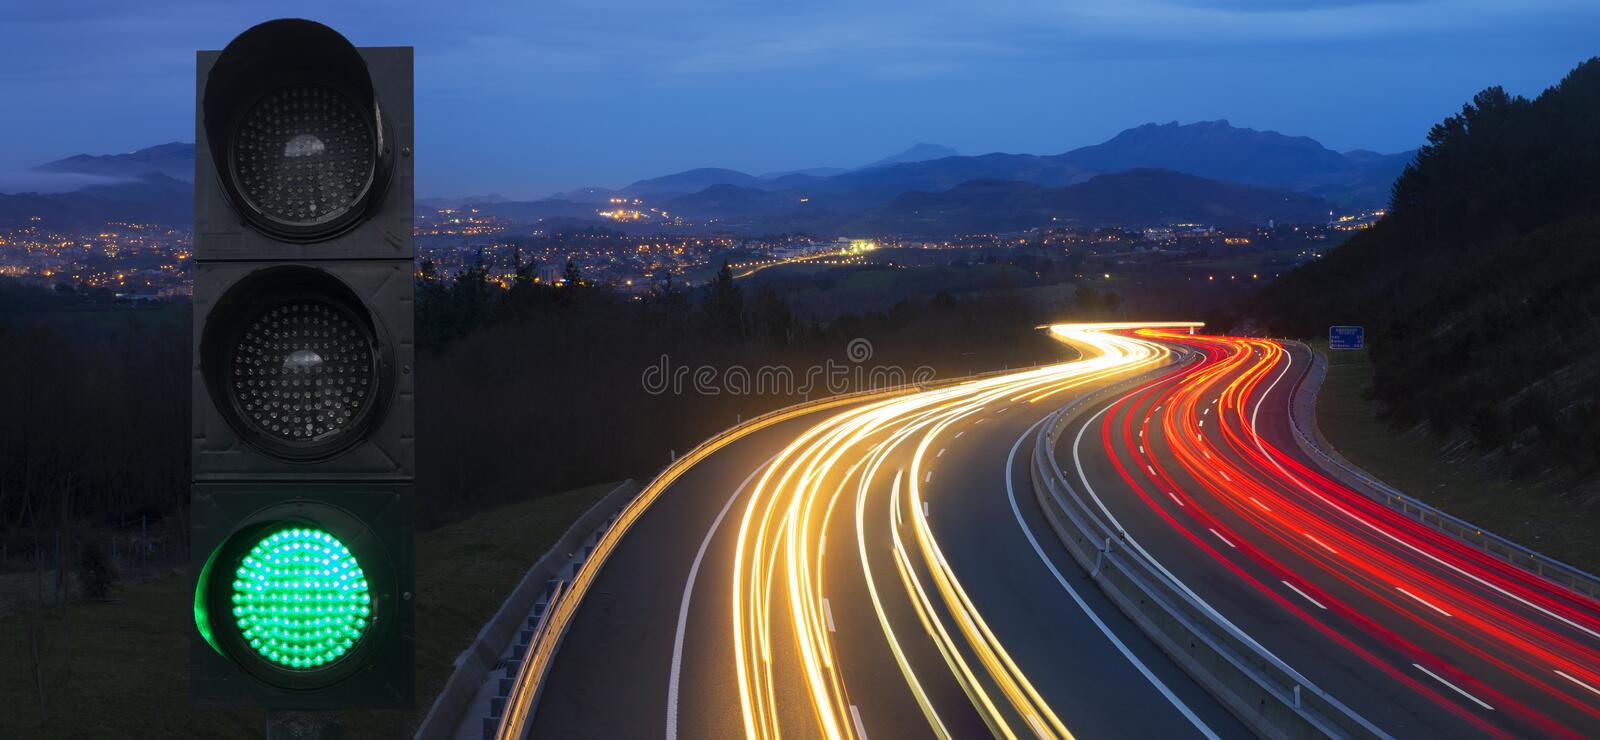 Traffic lights and car lights at night royalty free stock photography